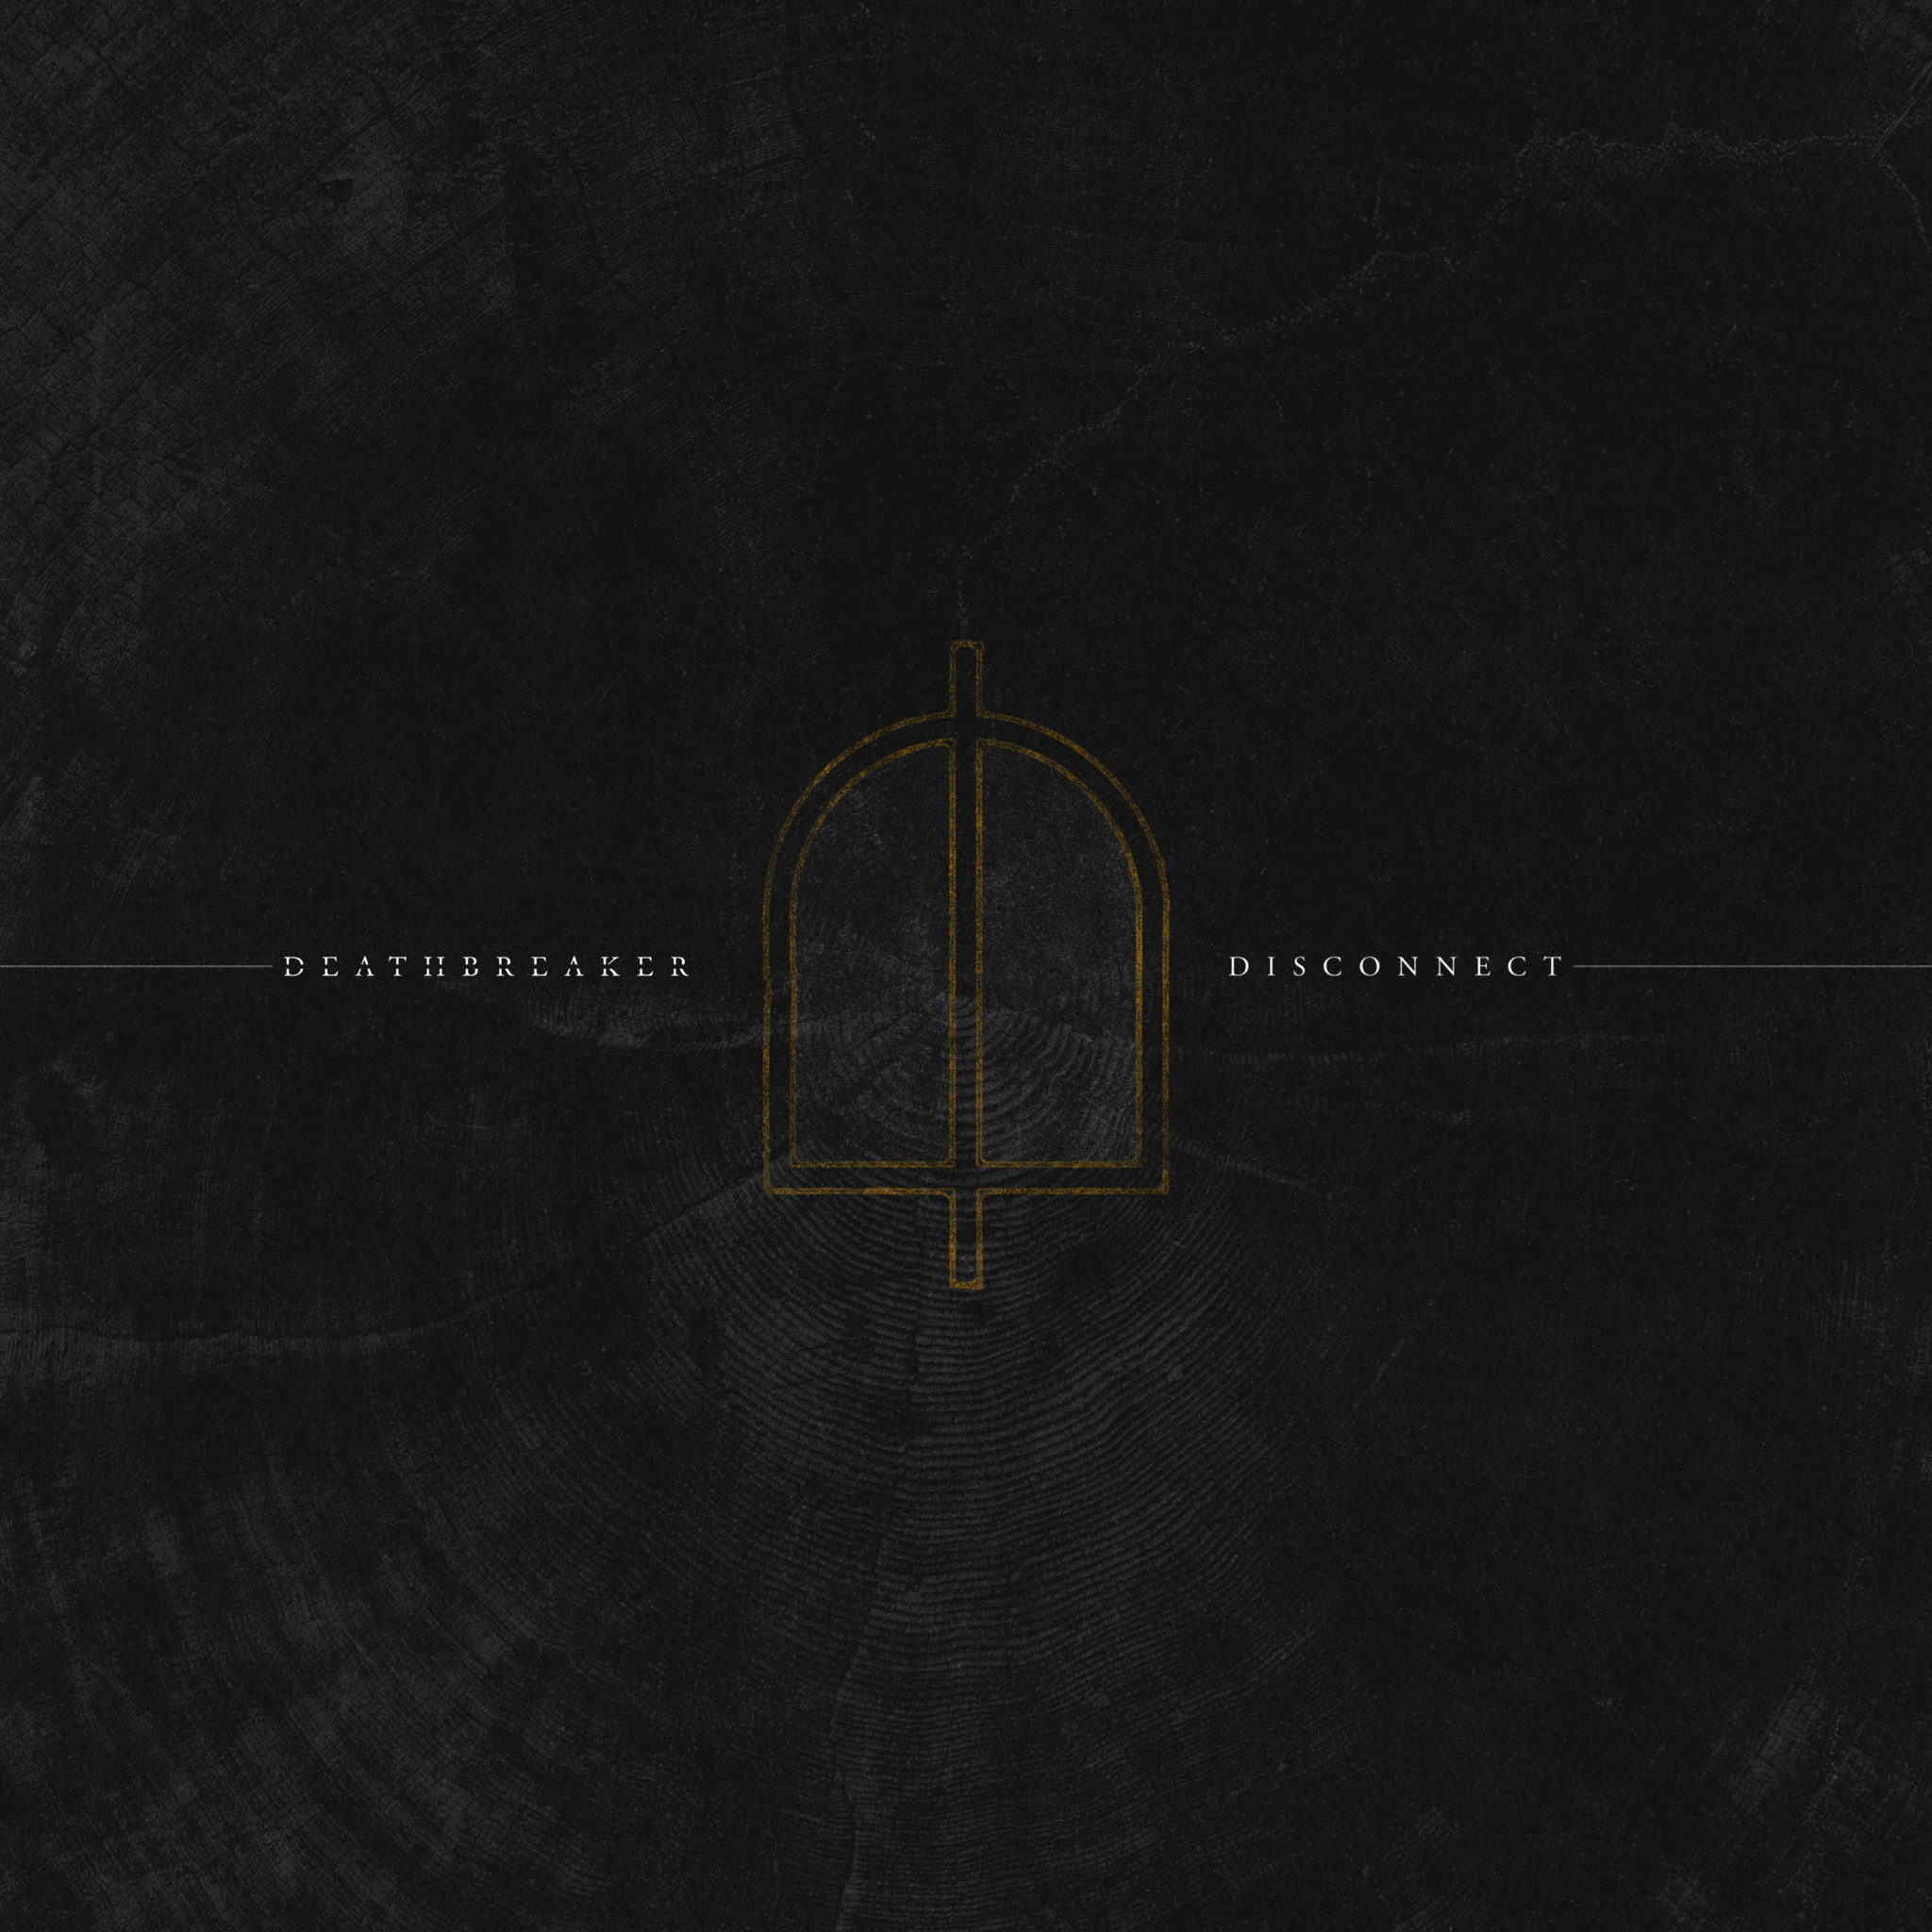 deathbreaker-disconnect-3000px